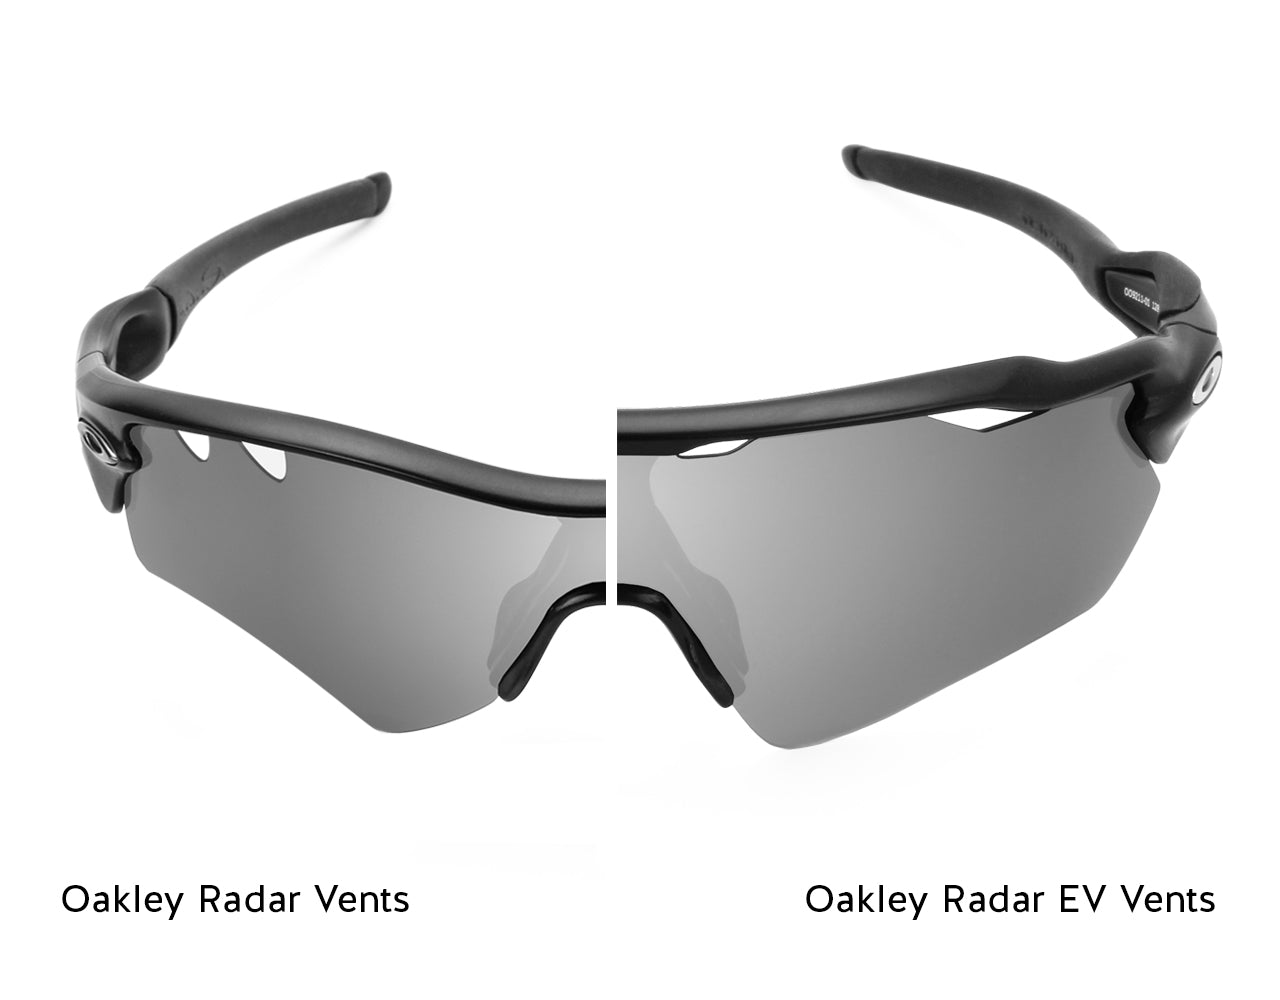 Oakley Radar Vents (left) vs. Oakley Radar EV Vents